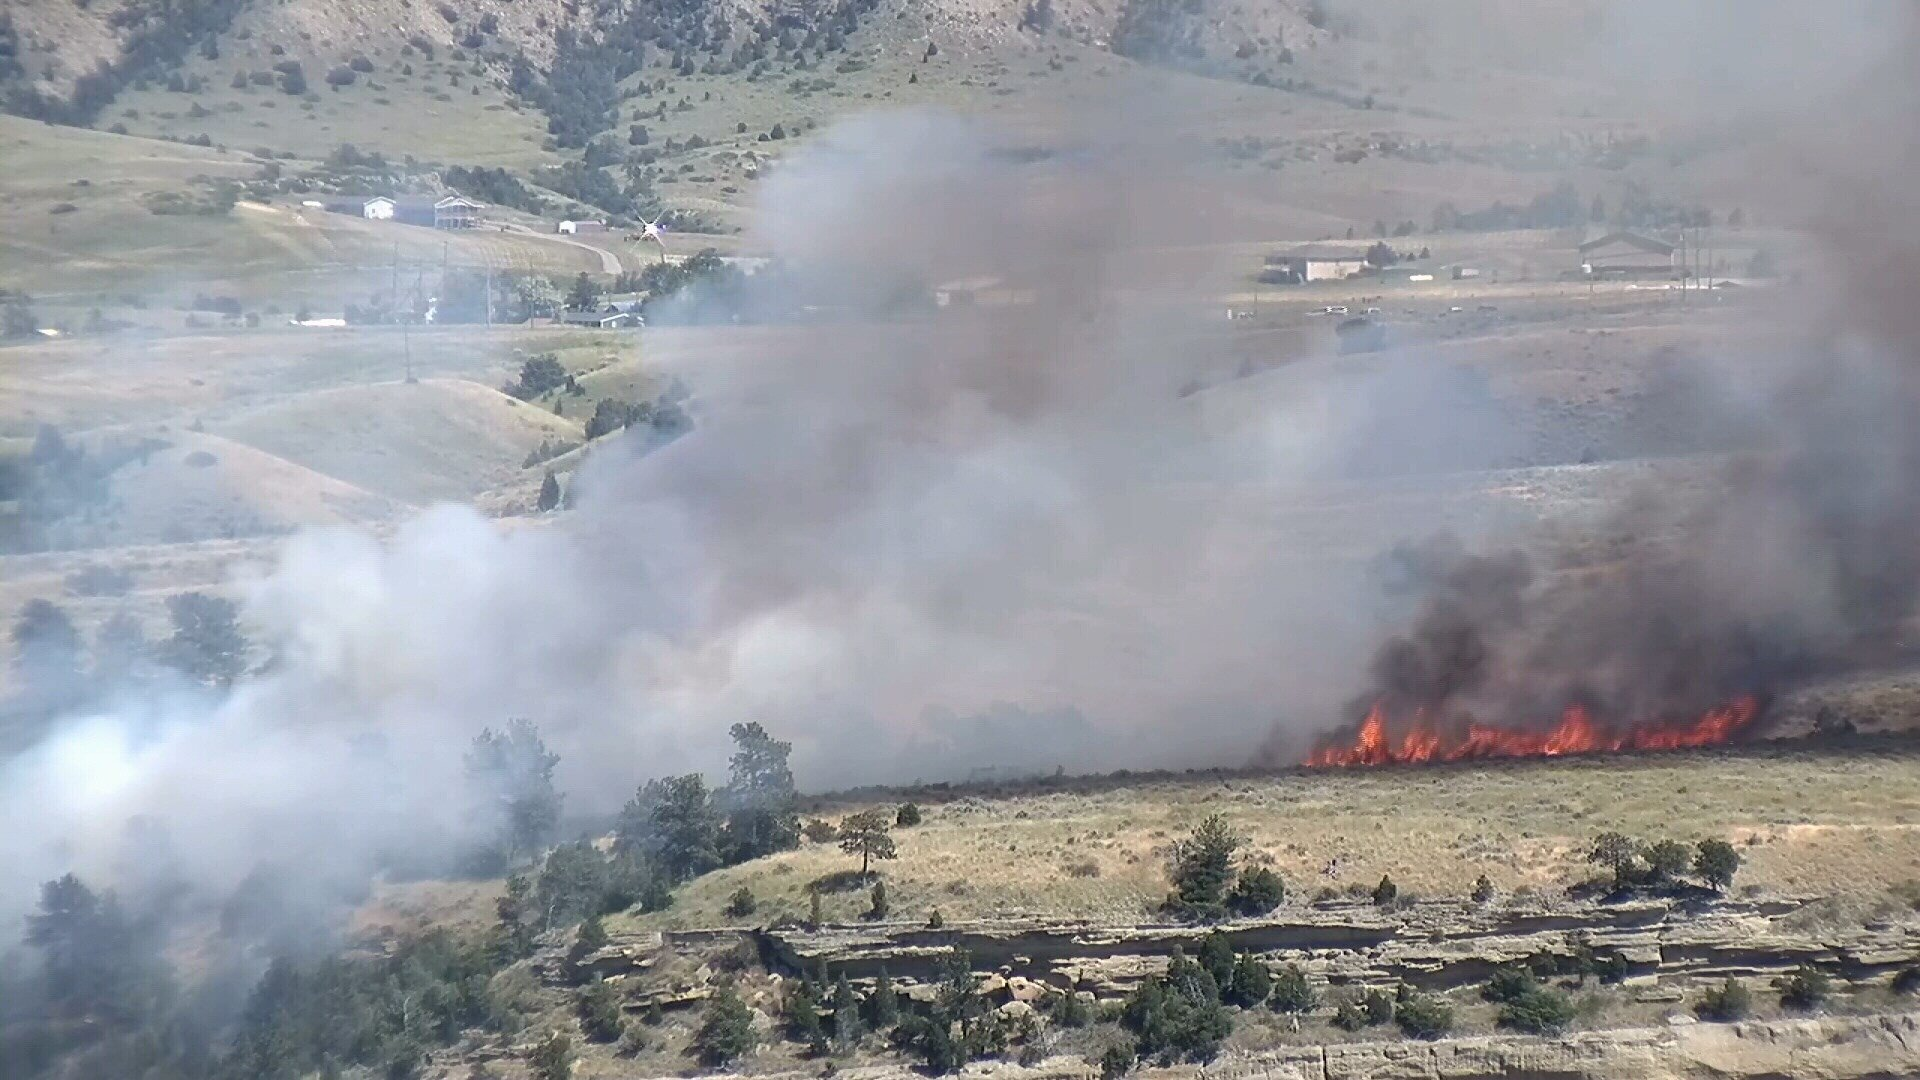 This fire burned Tuesday afternoon near Lockwood. (MTN News photo)